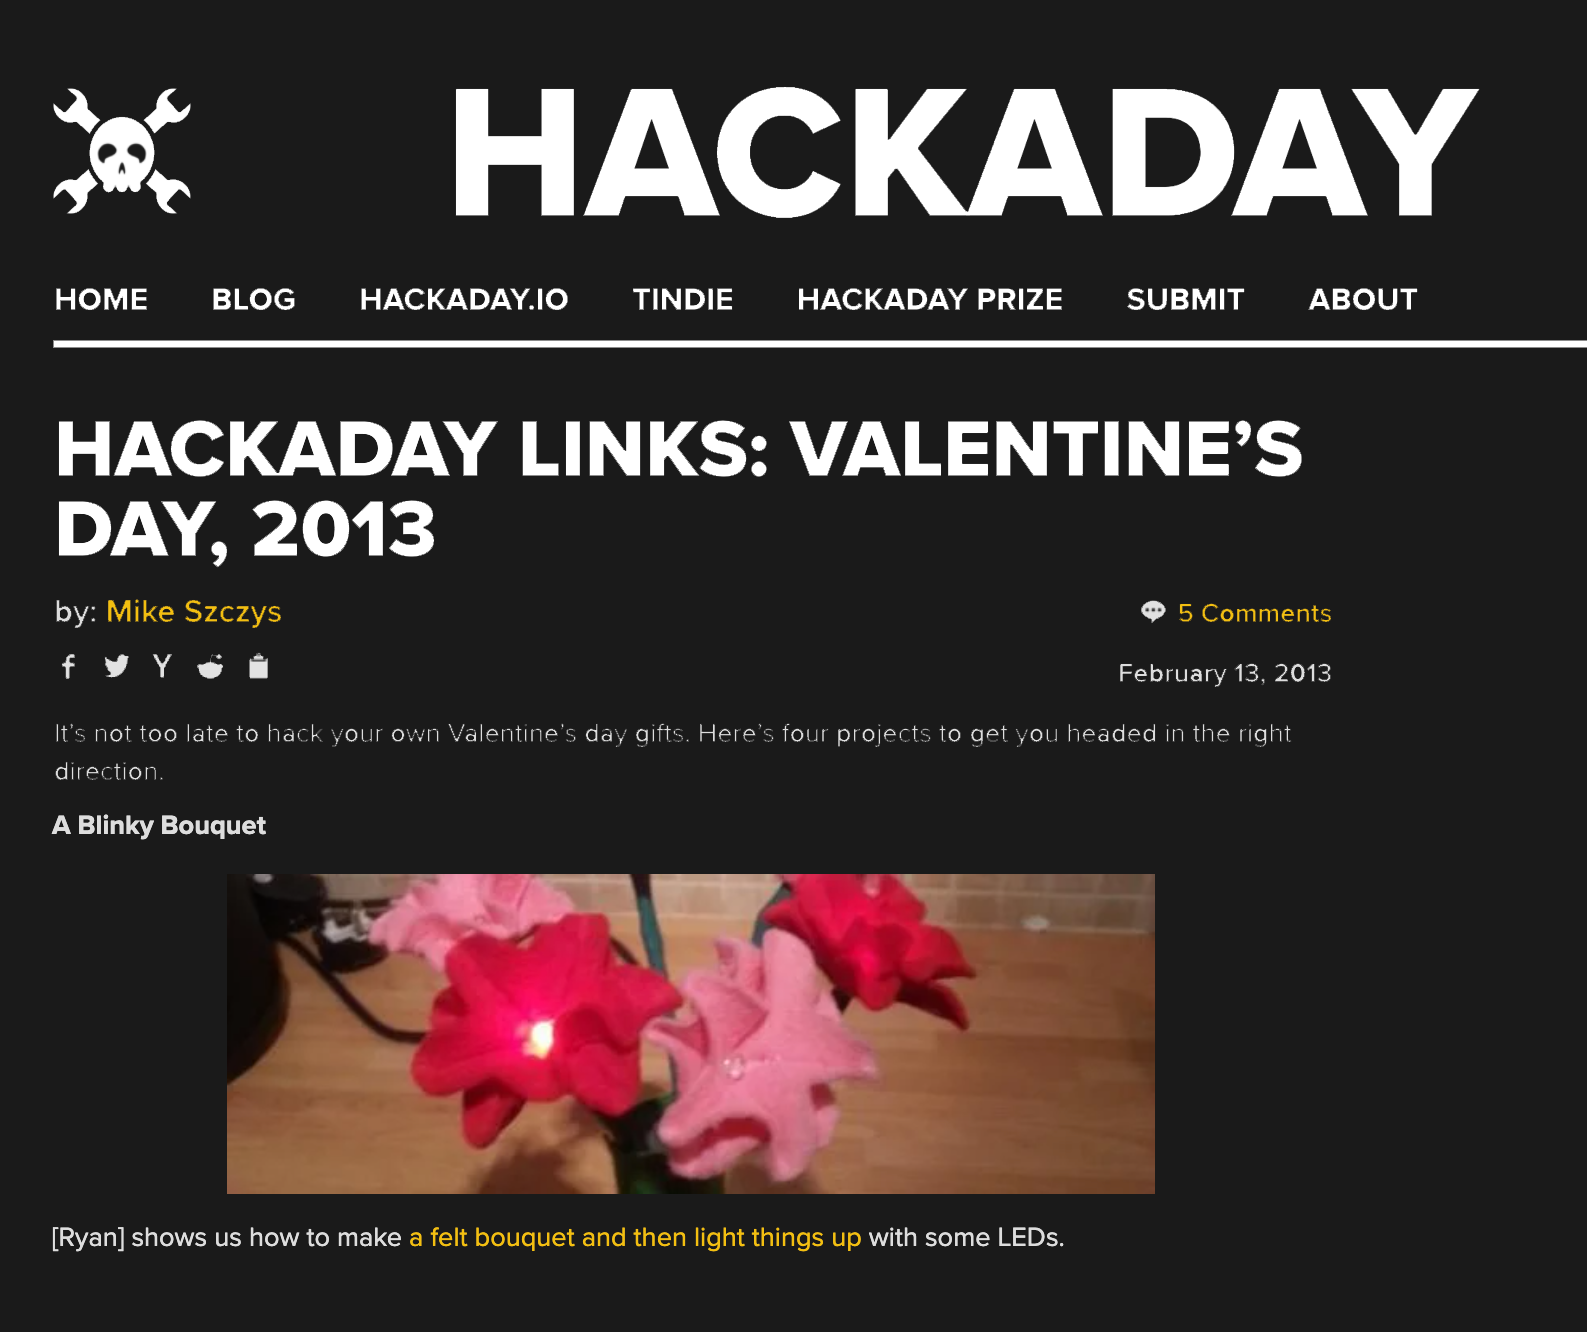 Valentines Day – A Blinky Bouquet